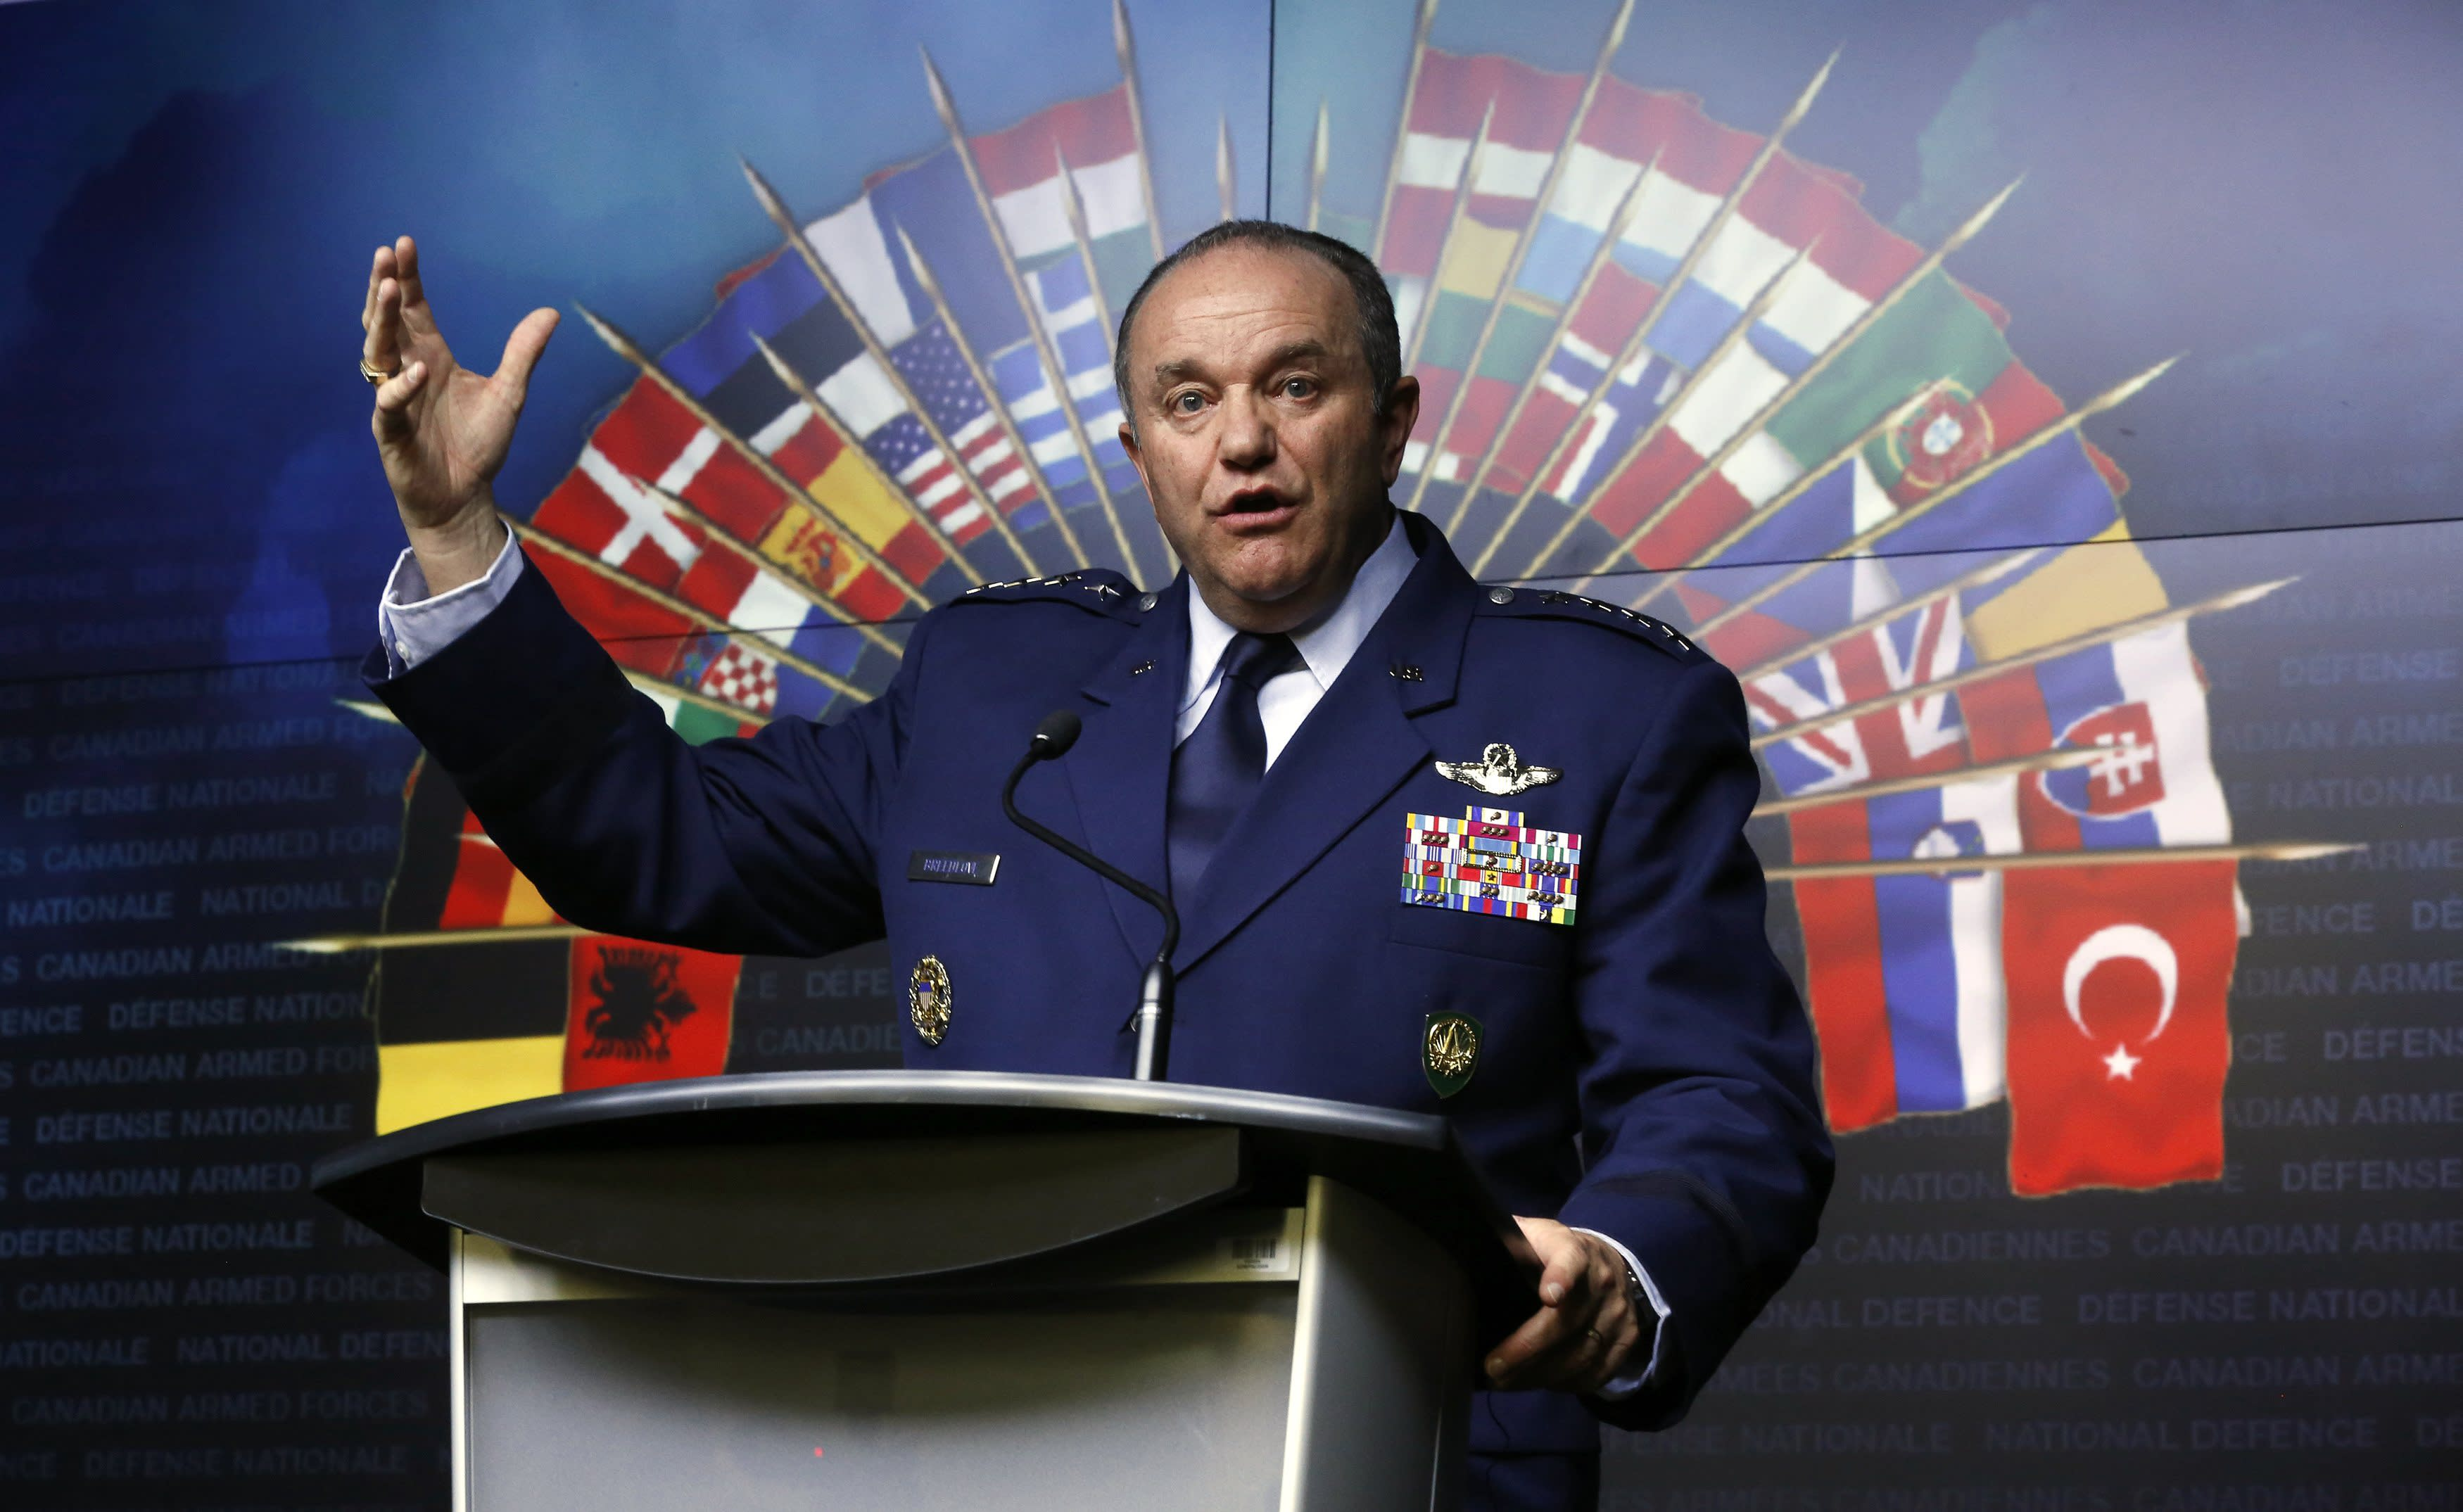 NATO Supreme Allied Commander Europe and Commander of the U.S. European Command General Philip Breedlove speaks during a news conference at the National Defence headquarters in Ottawa May 6, 2014. NATO will have to consider permanently stationing troops in eastern Europe as a result of the increased tension between Russia and Ukraine, the alliance's top military commander Breedlove said on Tuesday. REUTERS/Chris Wattie (CANADA - Tags: POLITICS MILITARY)